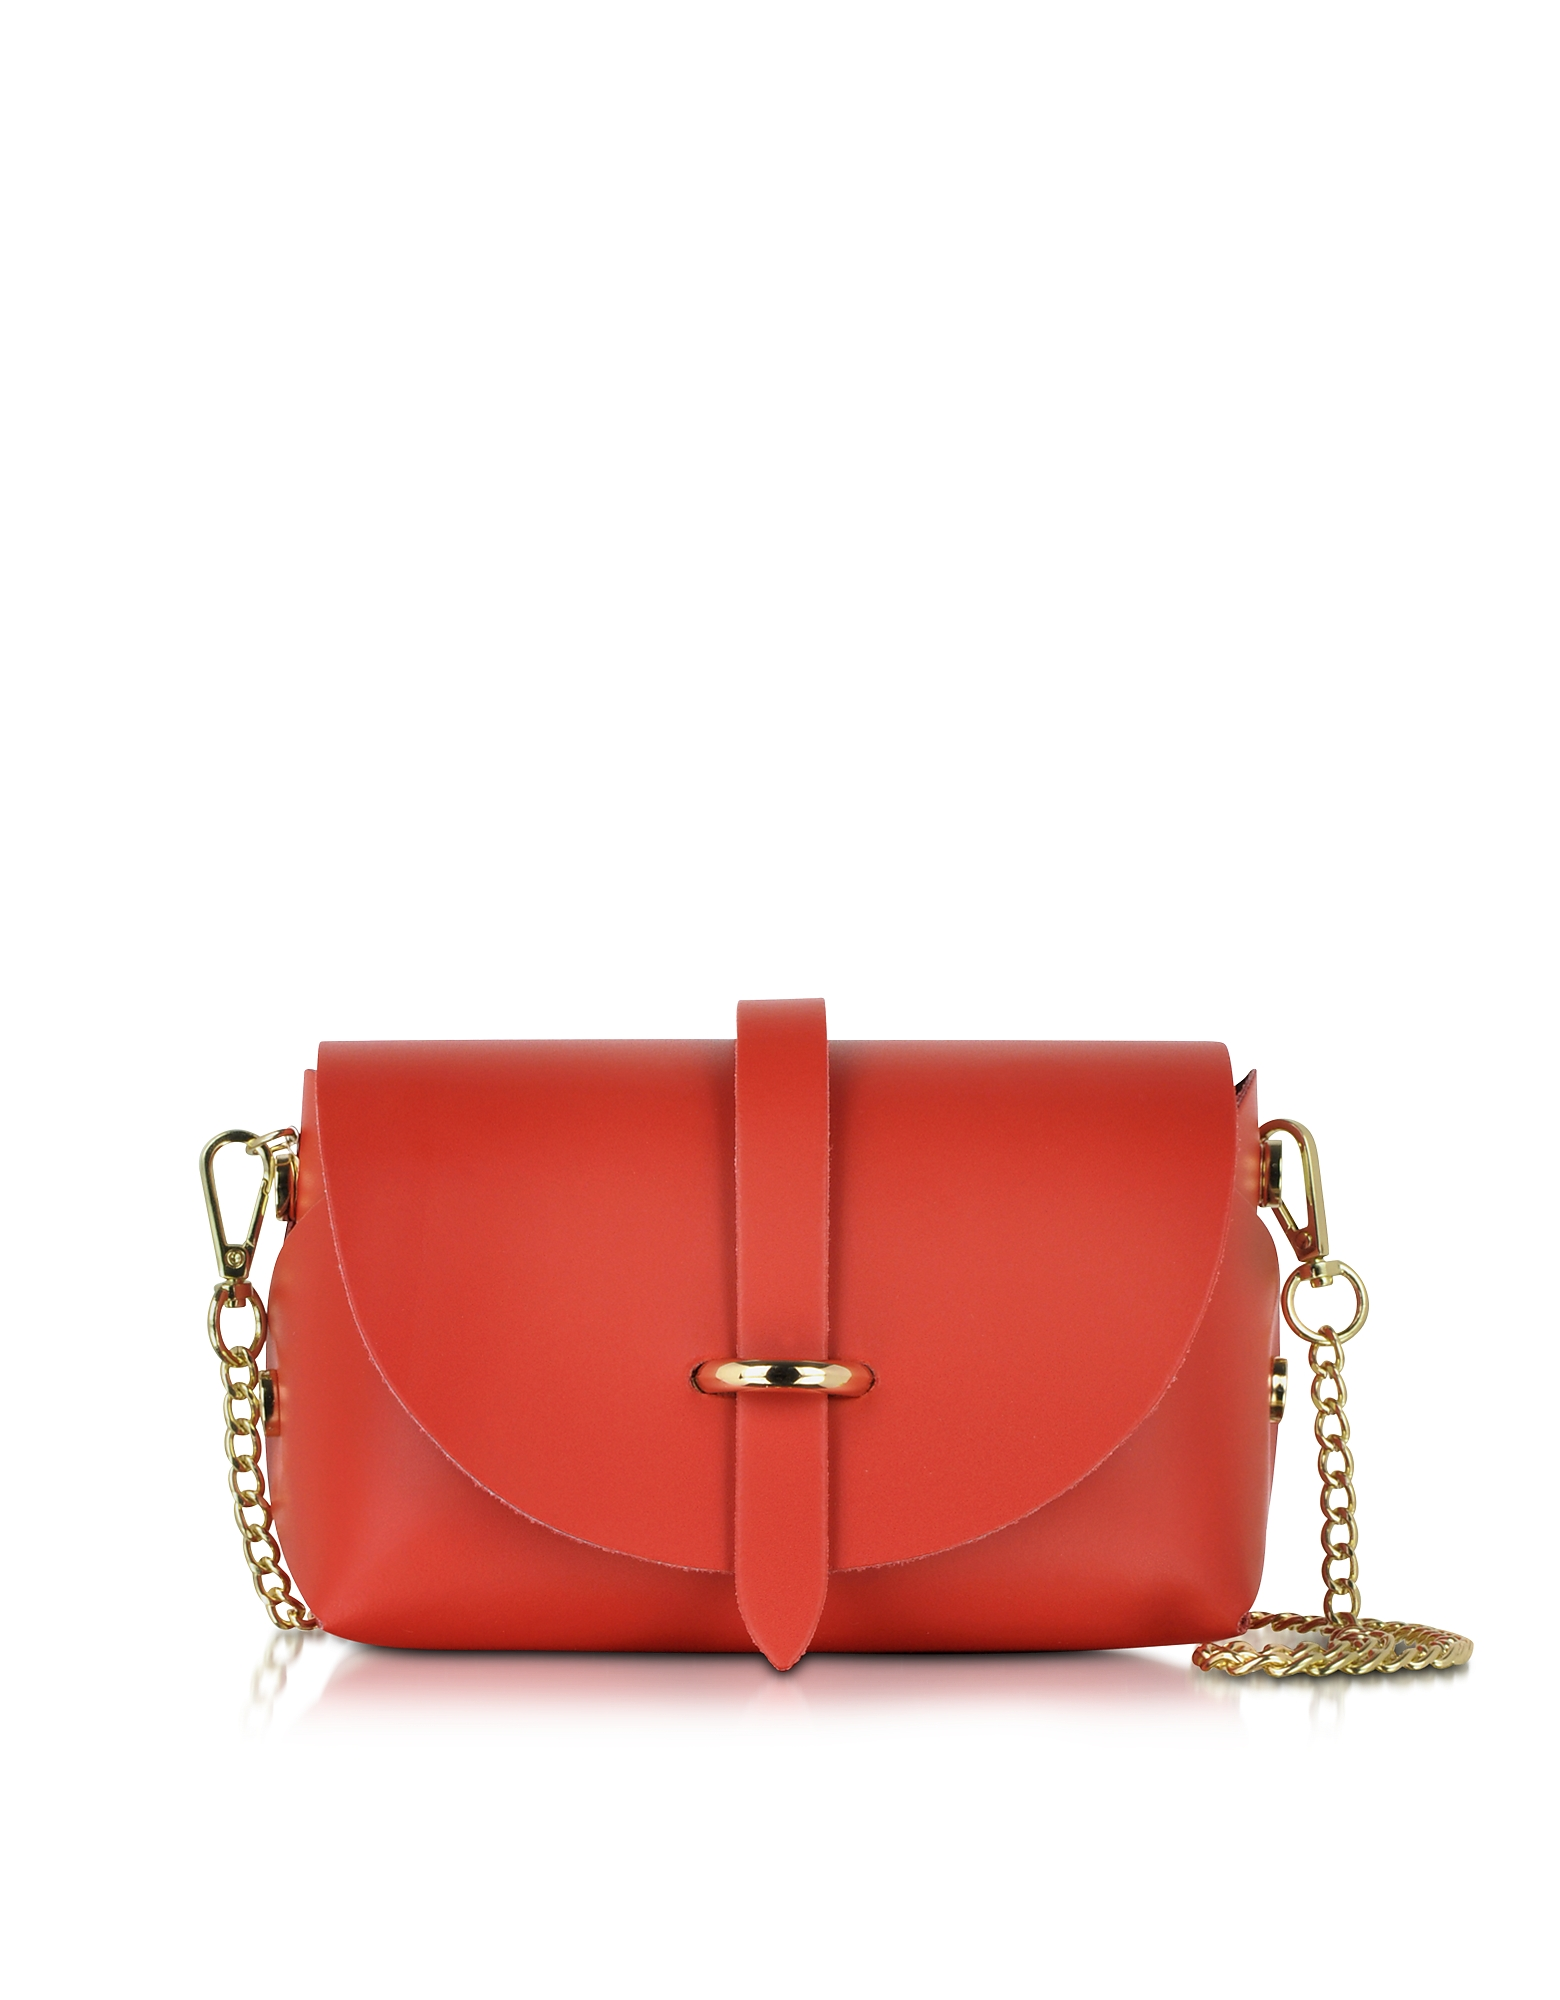 Le Parmentier Handbags, Caviar Small Red Leather Shoulder Bag